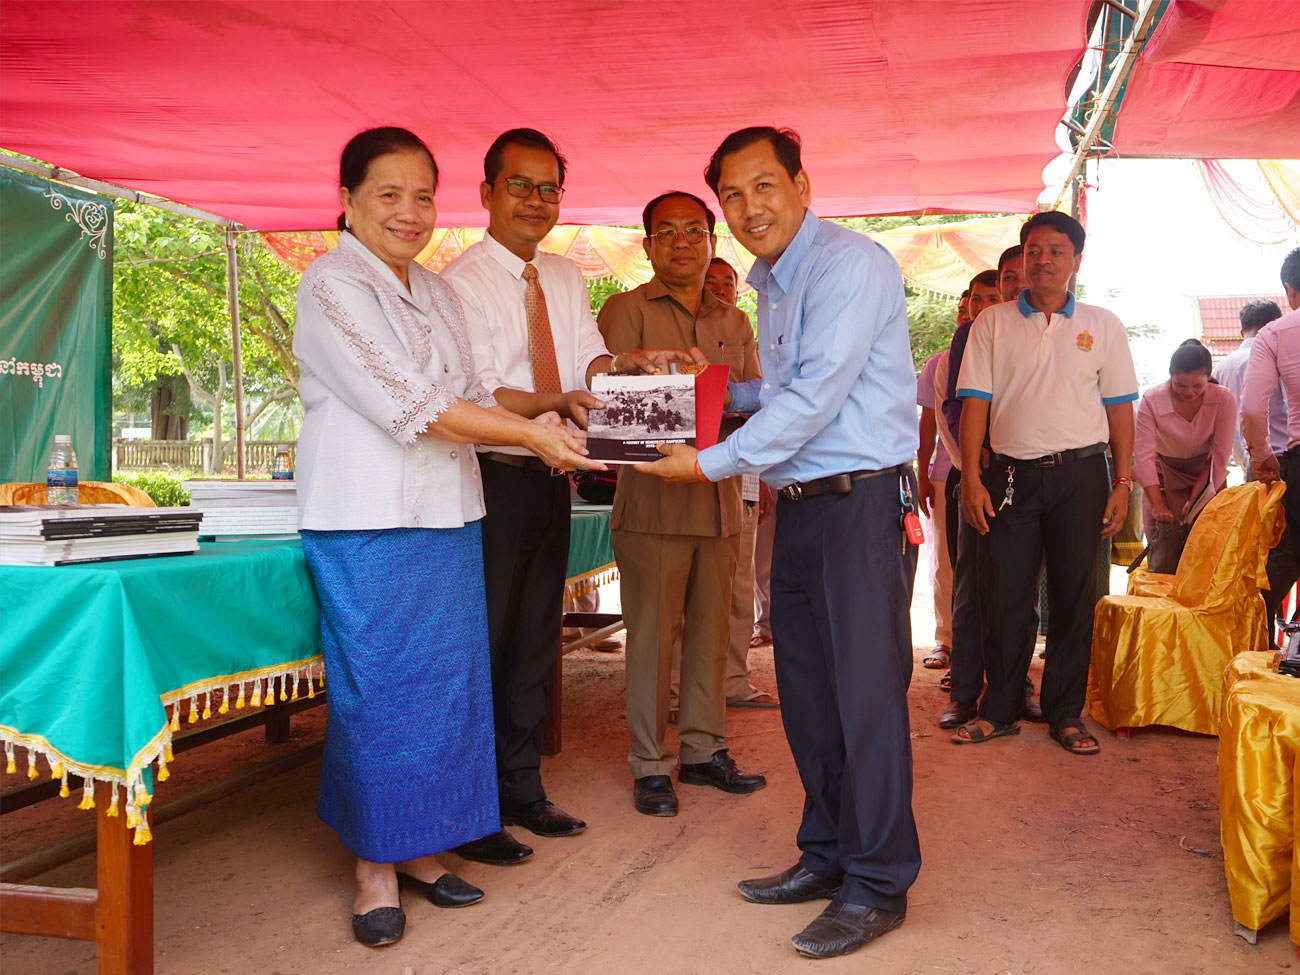 Almost 600 books were given to students and teachers for Khmer Rouge teaching and reading.